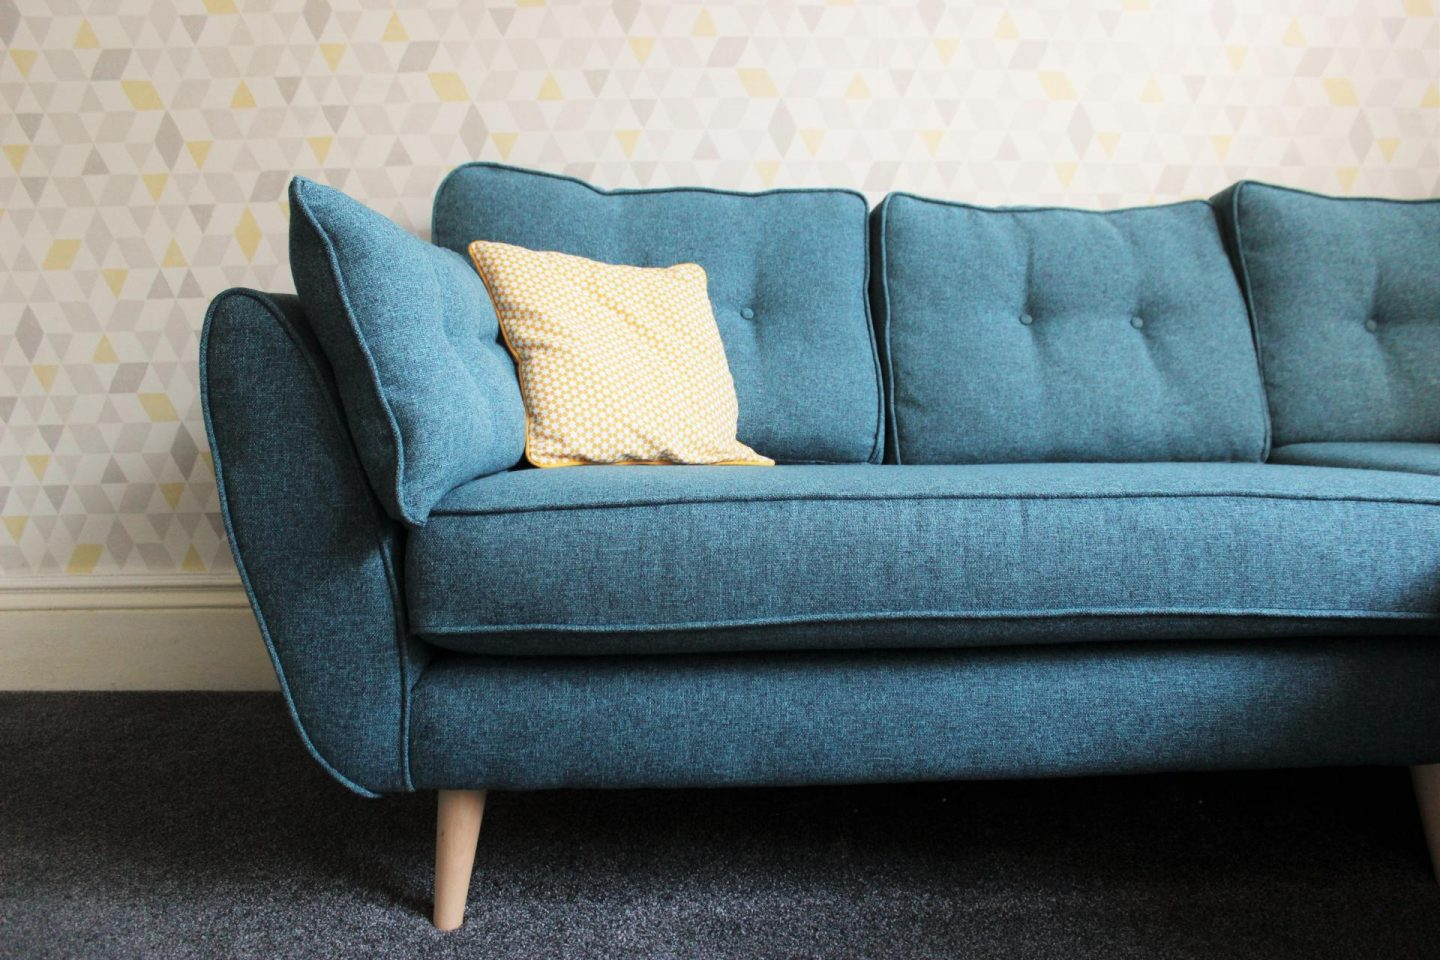 fearne cotton sofa alexis best filling for back cushions our living room makeover emma plus three